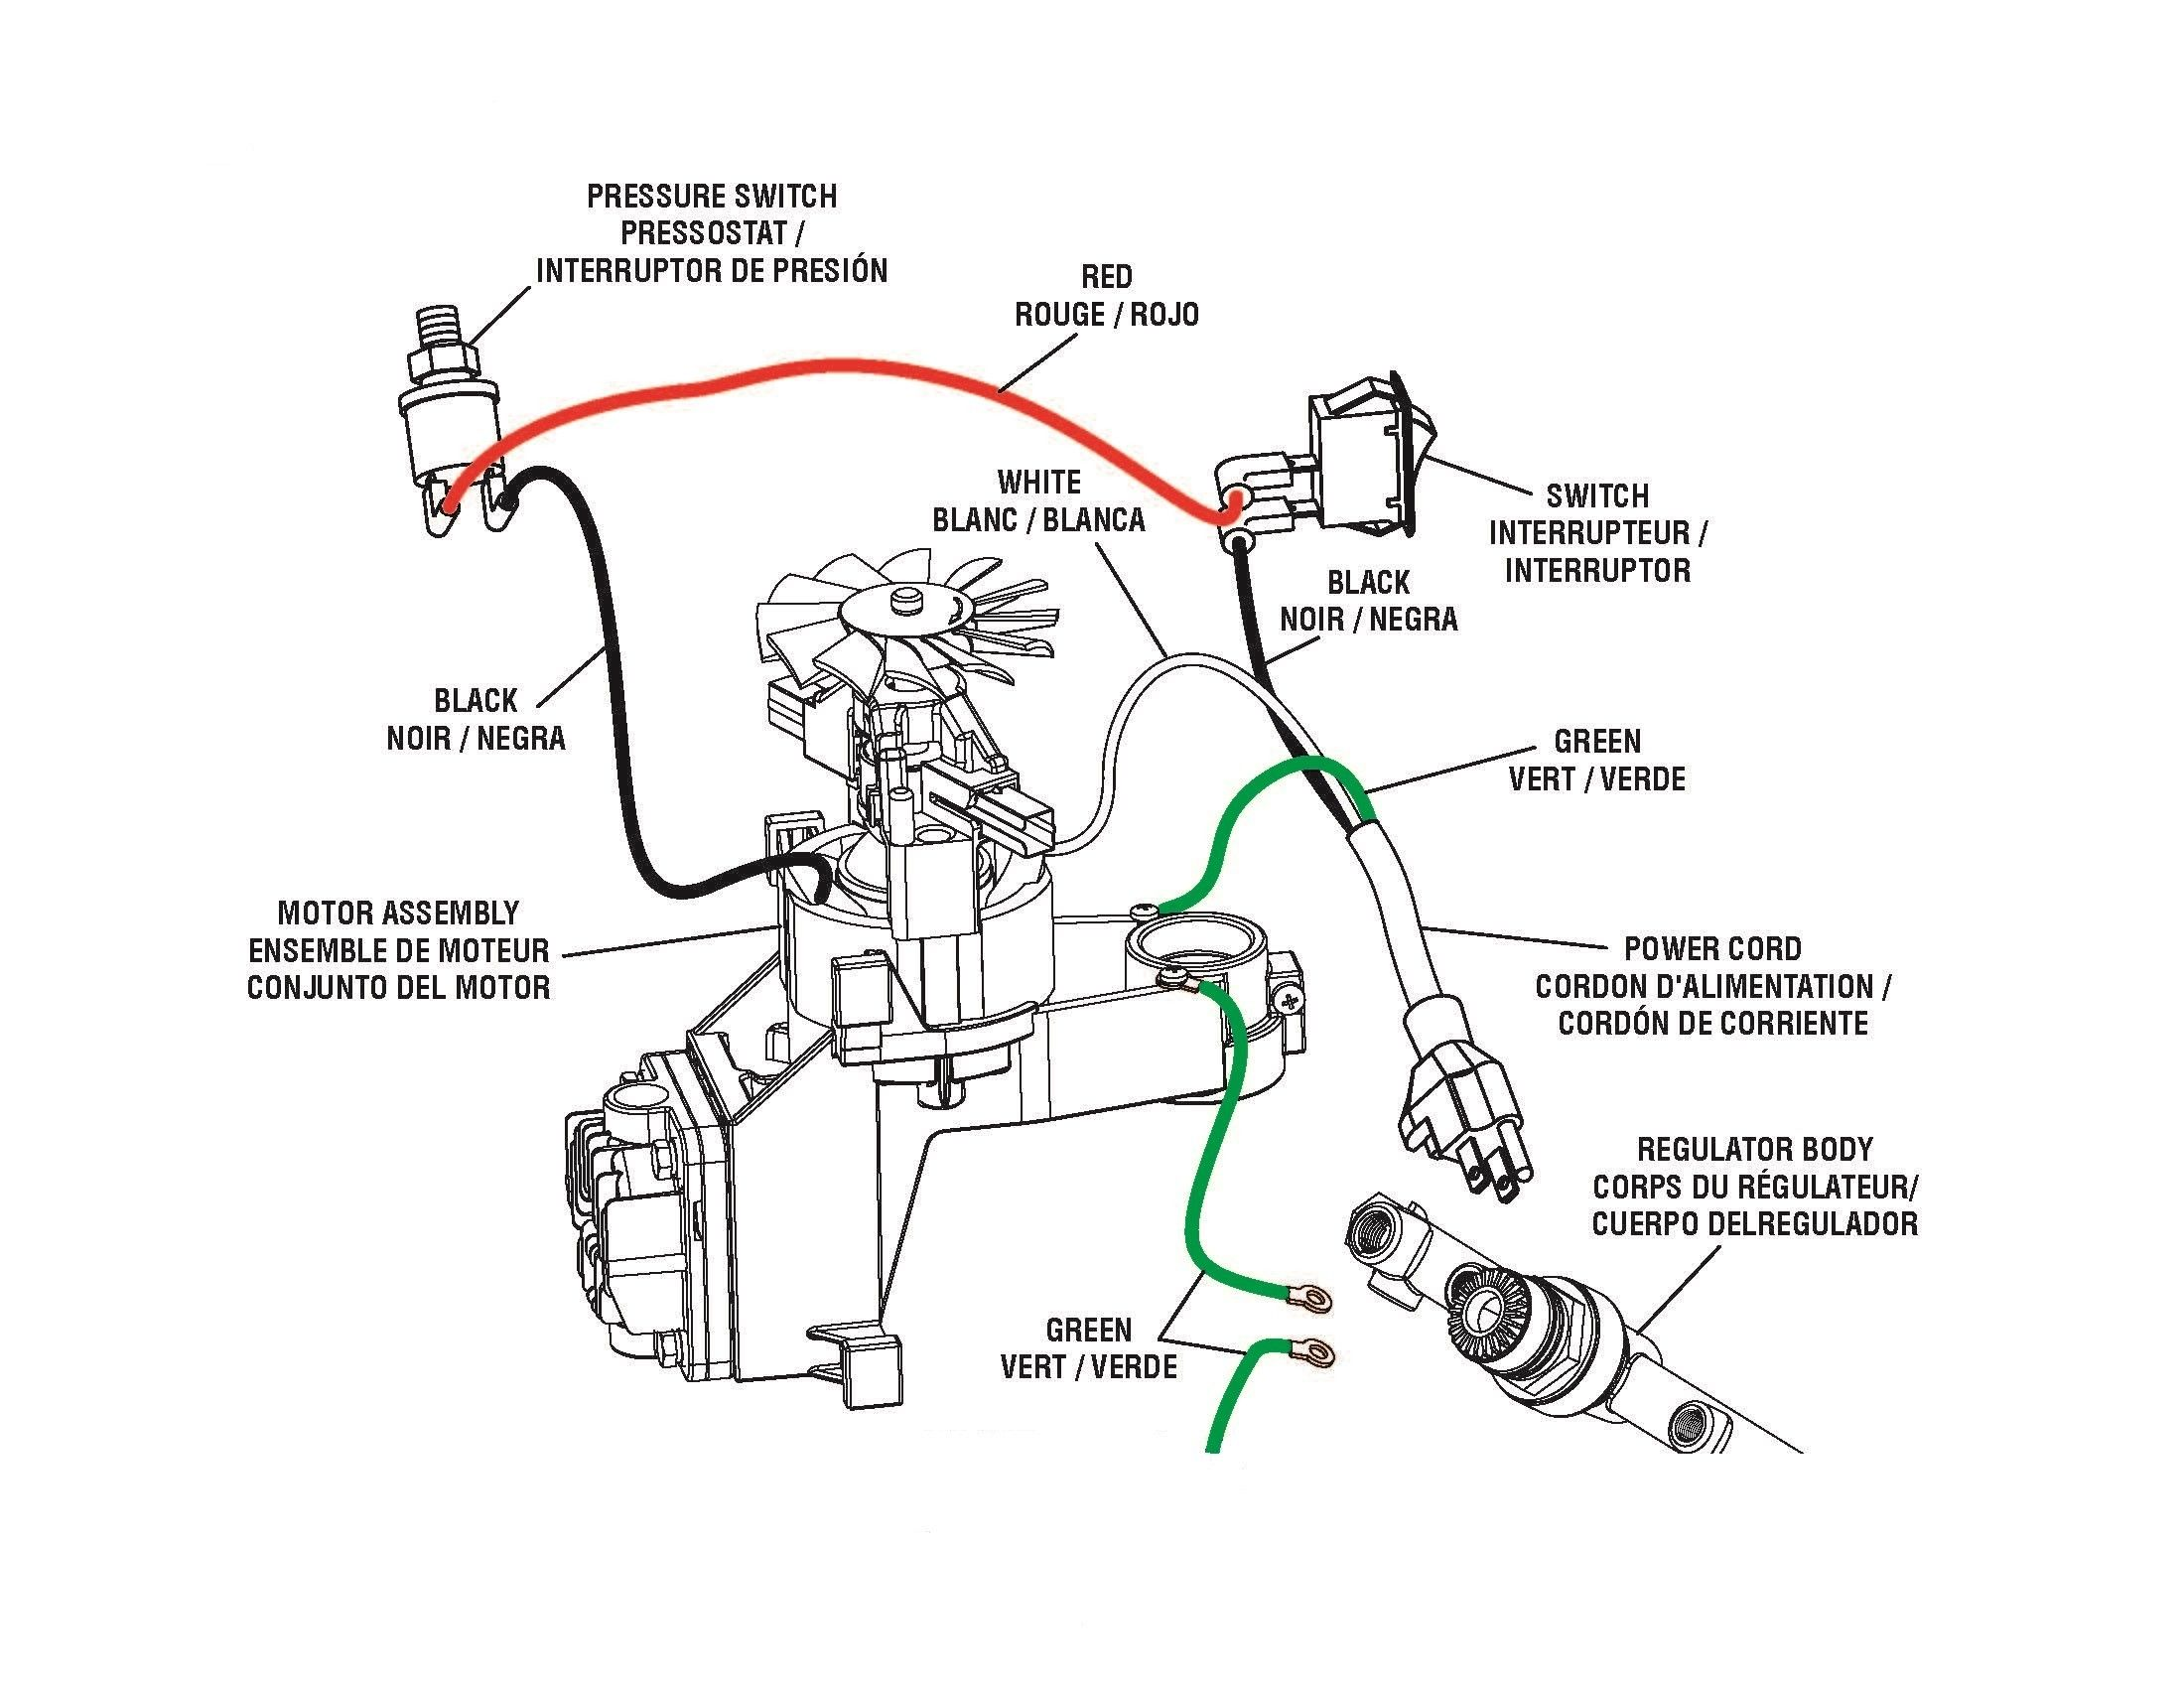 Unique Wiring Diagram for Air Compressor Pressure Switch | Air compressor  pressure switch, Air compressor, CompressorPinterest